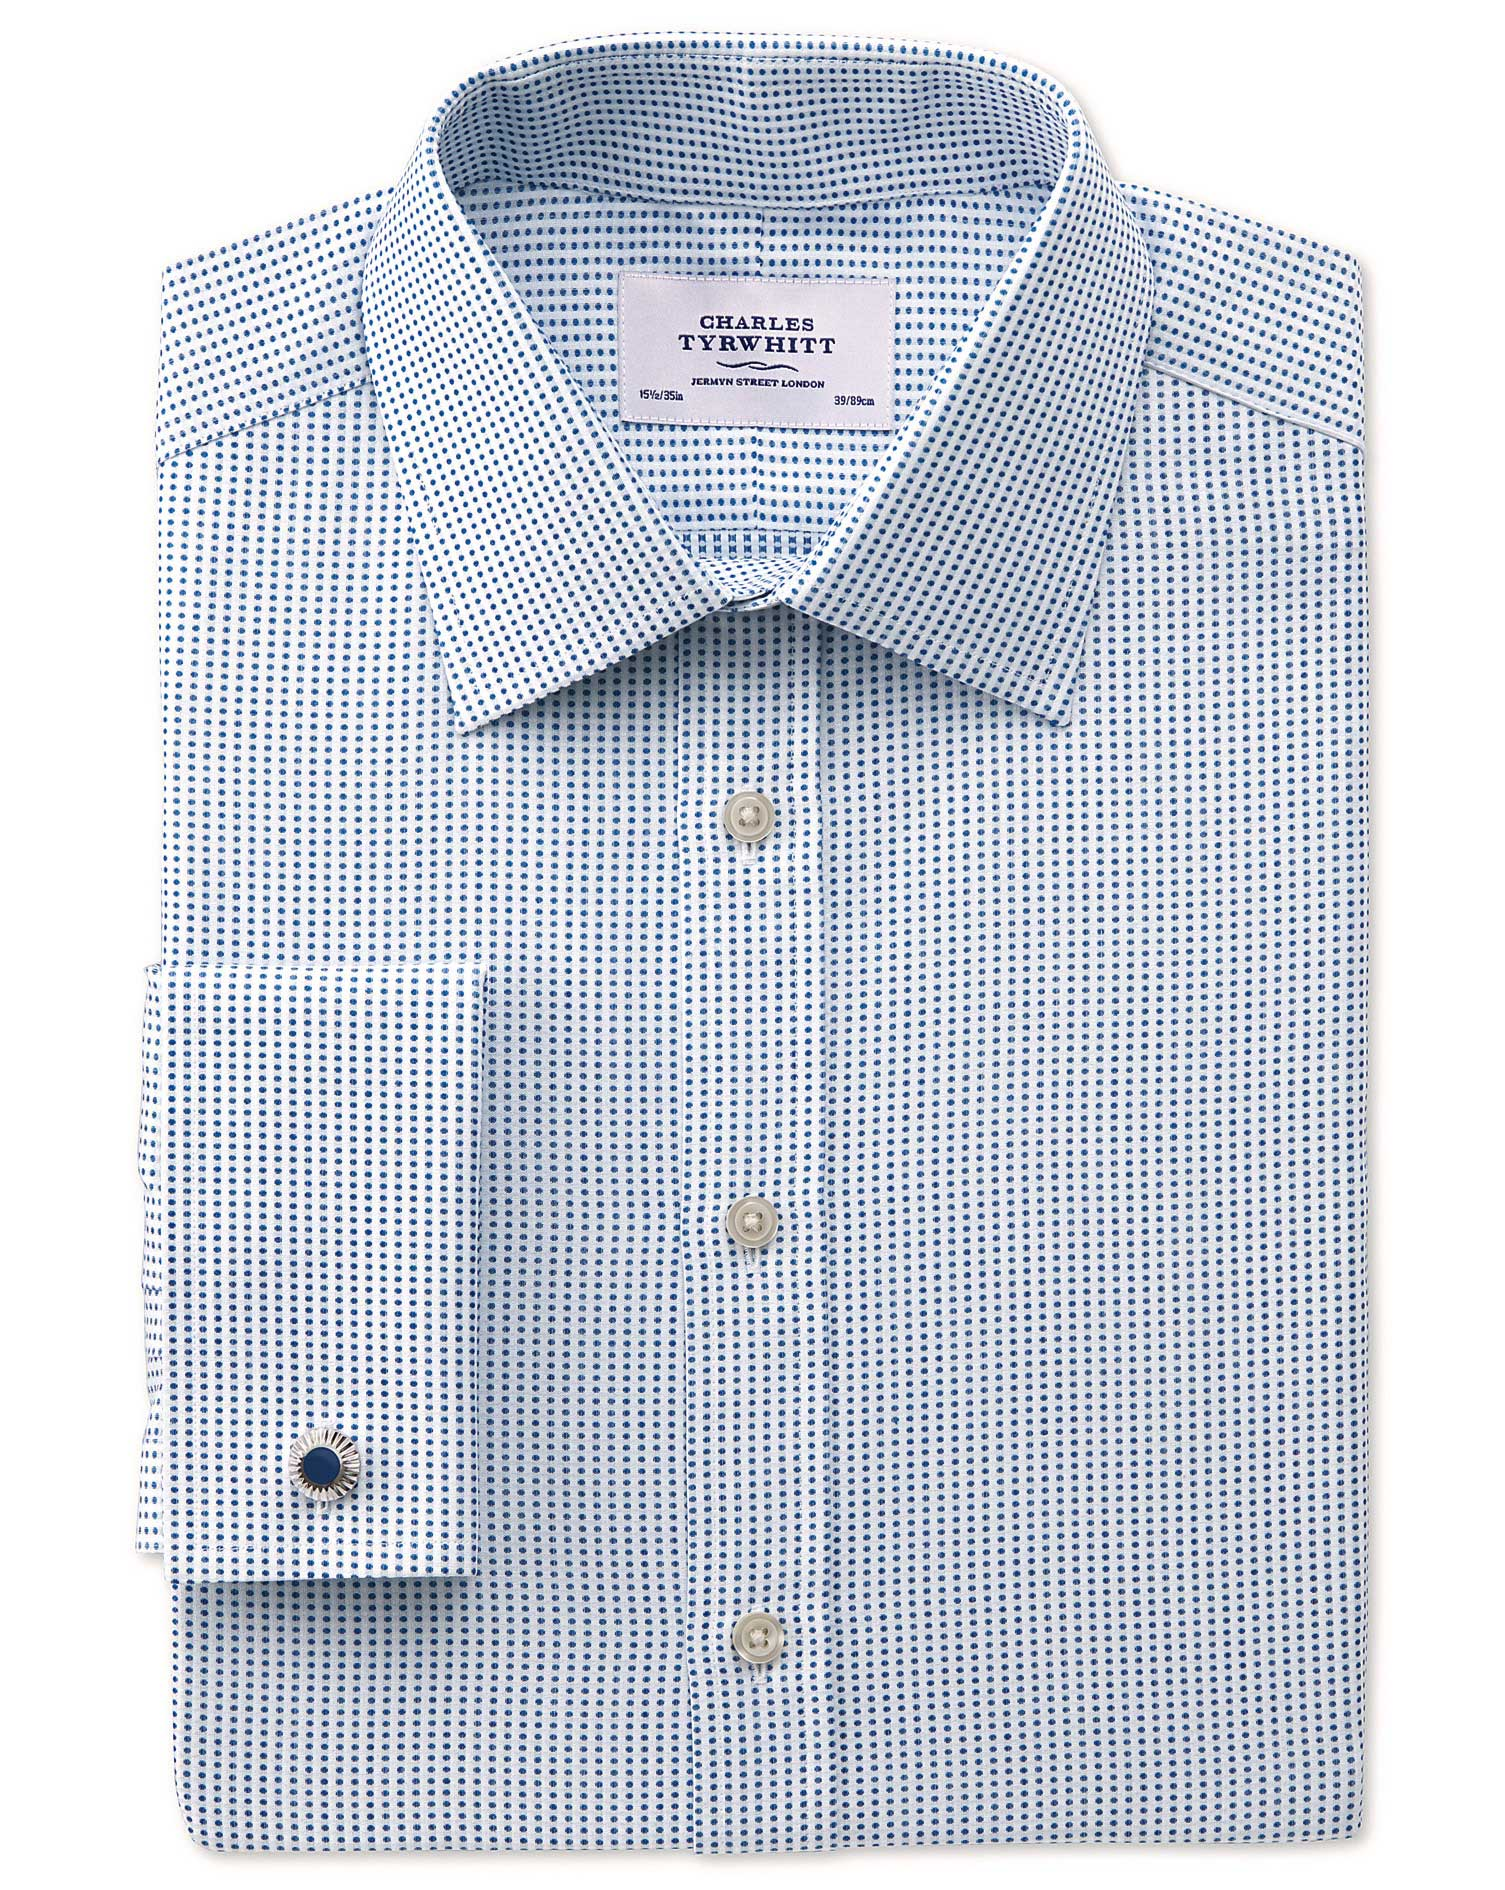 Classic Fit Pima Cotton Double-Faced Navy Formal Shirt Double Cuff Size 15/35 by Charles Tyrwhitt